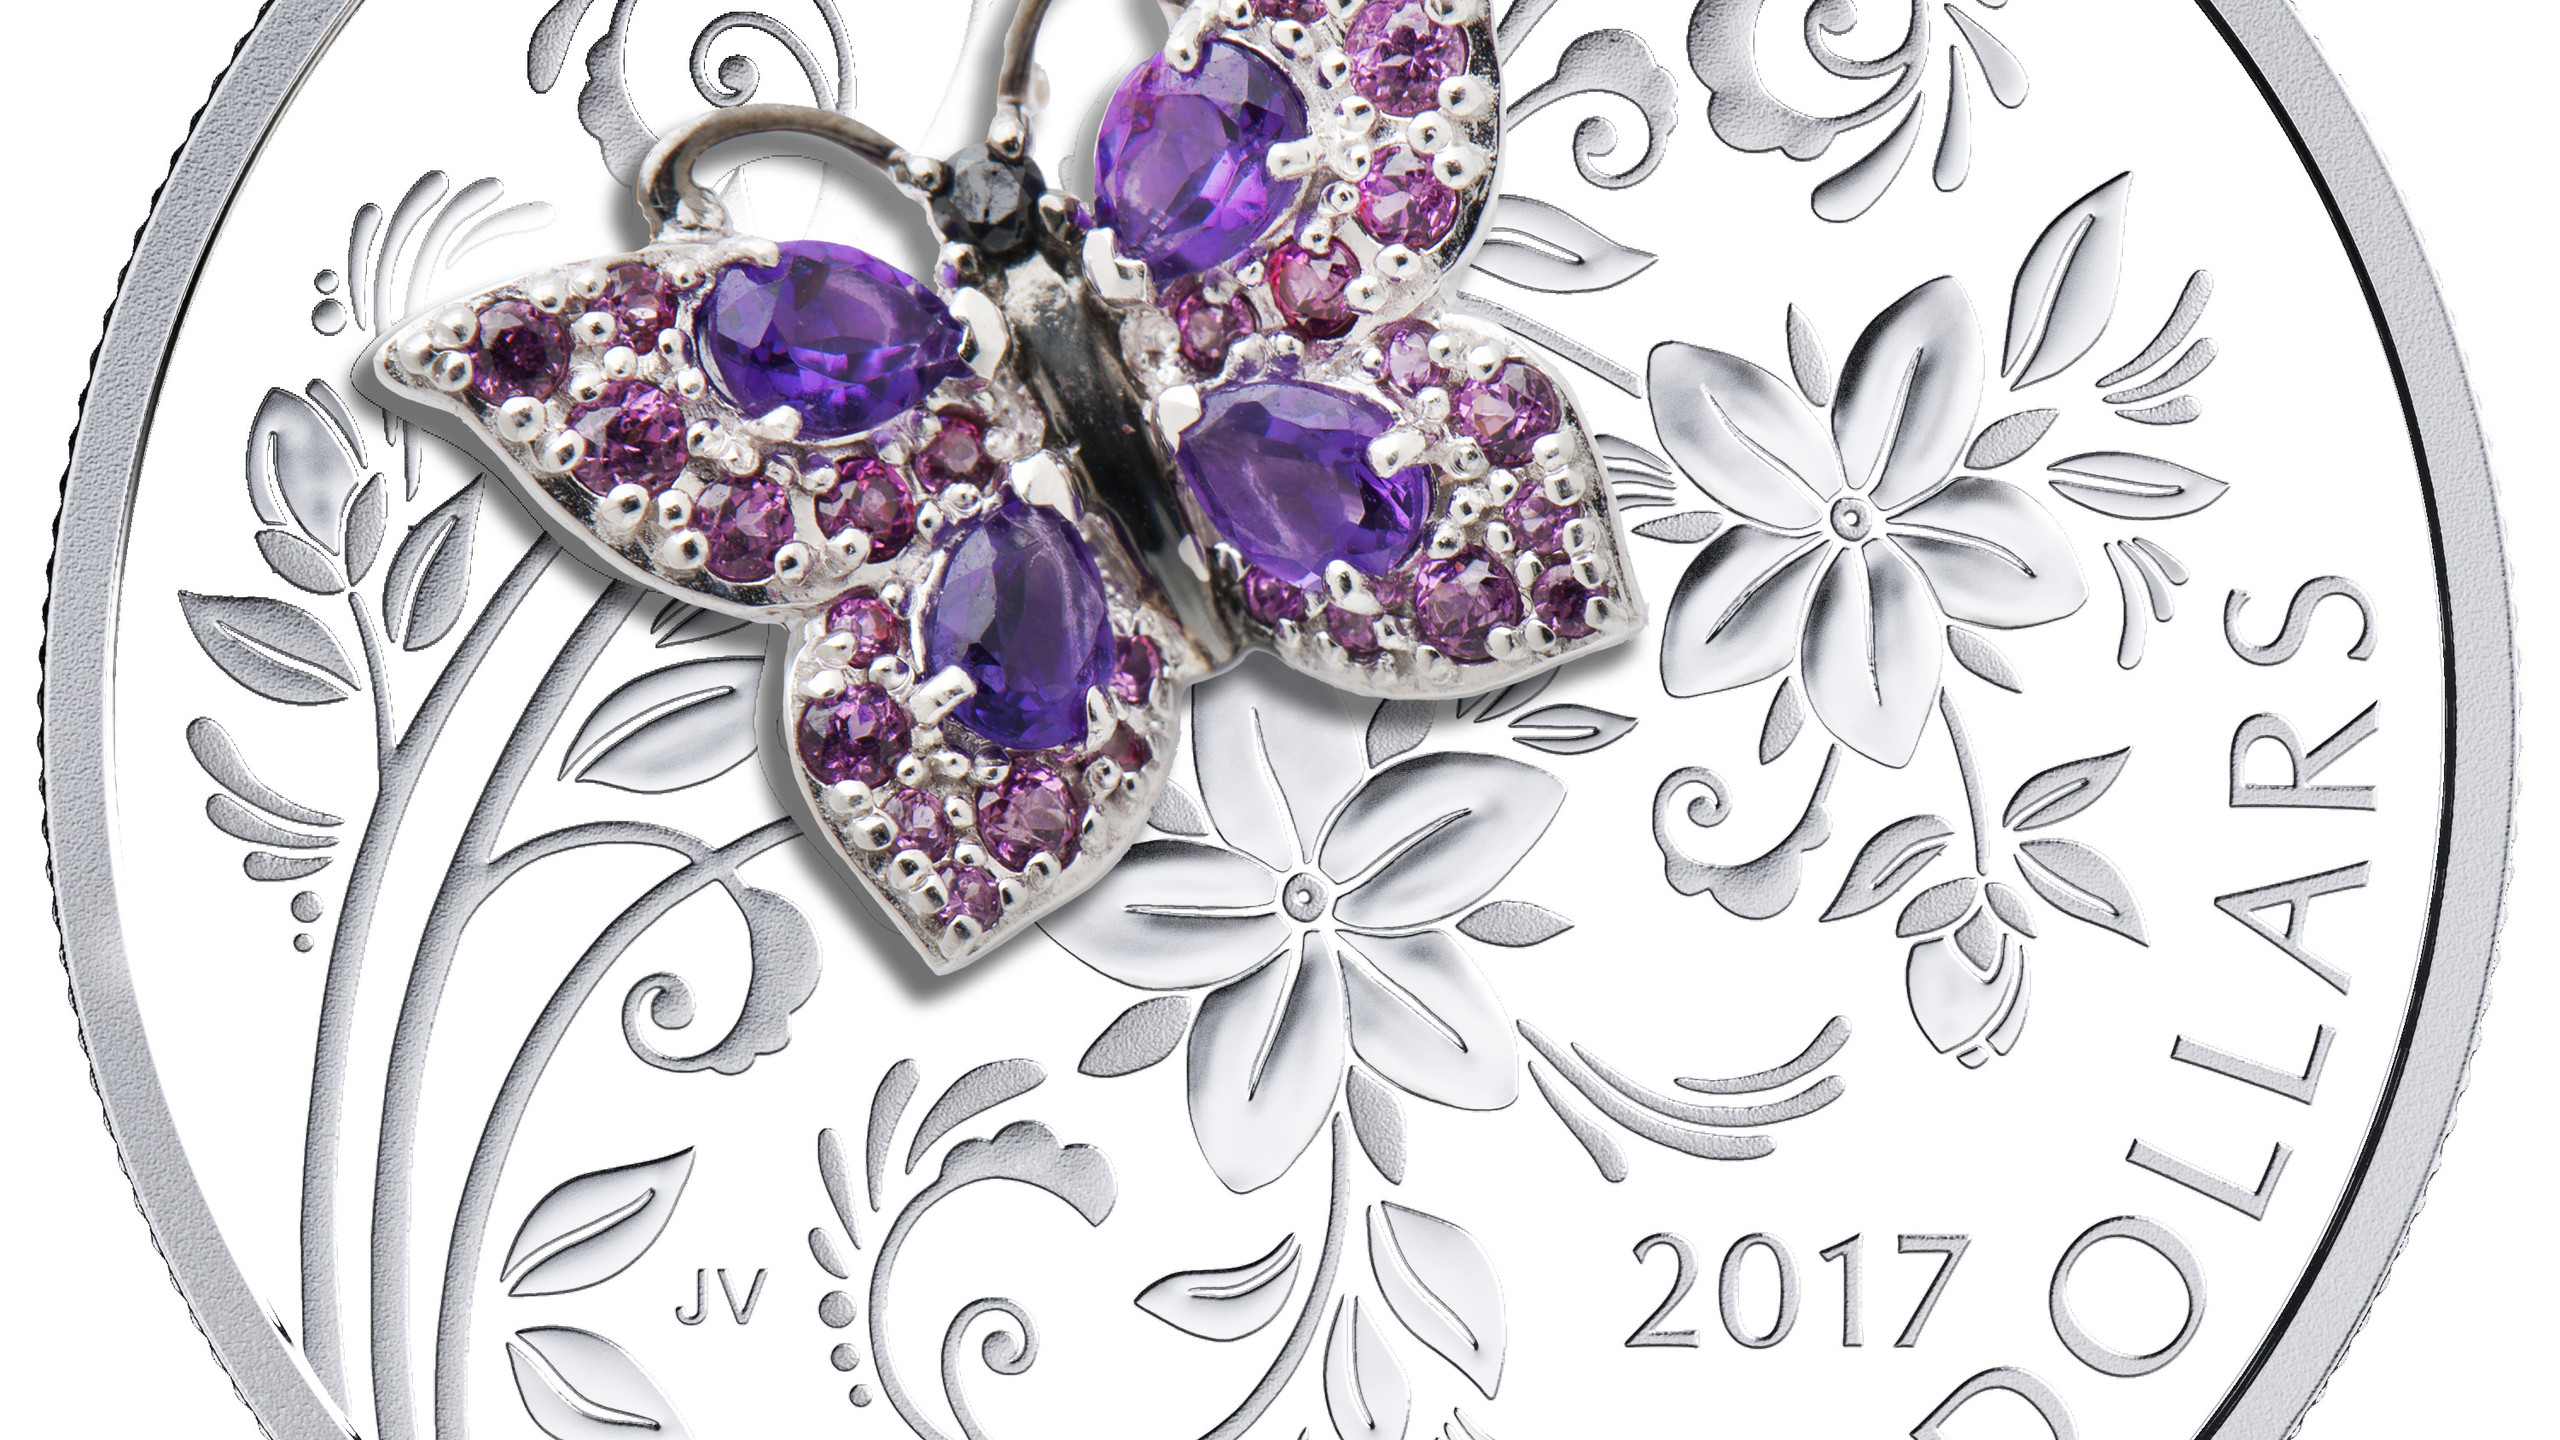 REVISED2017 $20 Fine Silver Coin - Bejeweled Bugs-Butterfly_rev